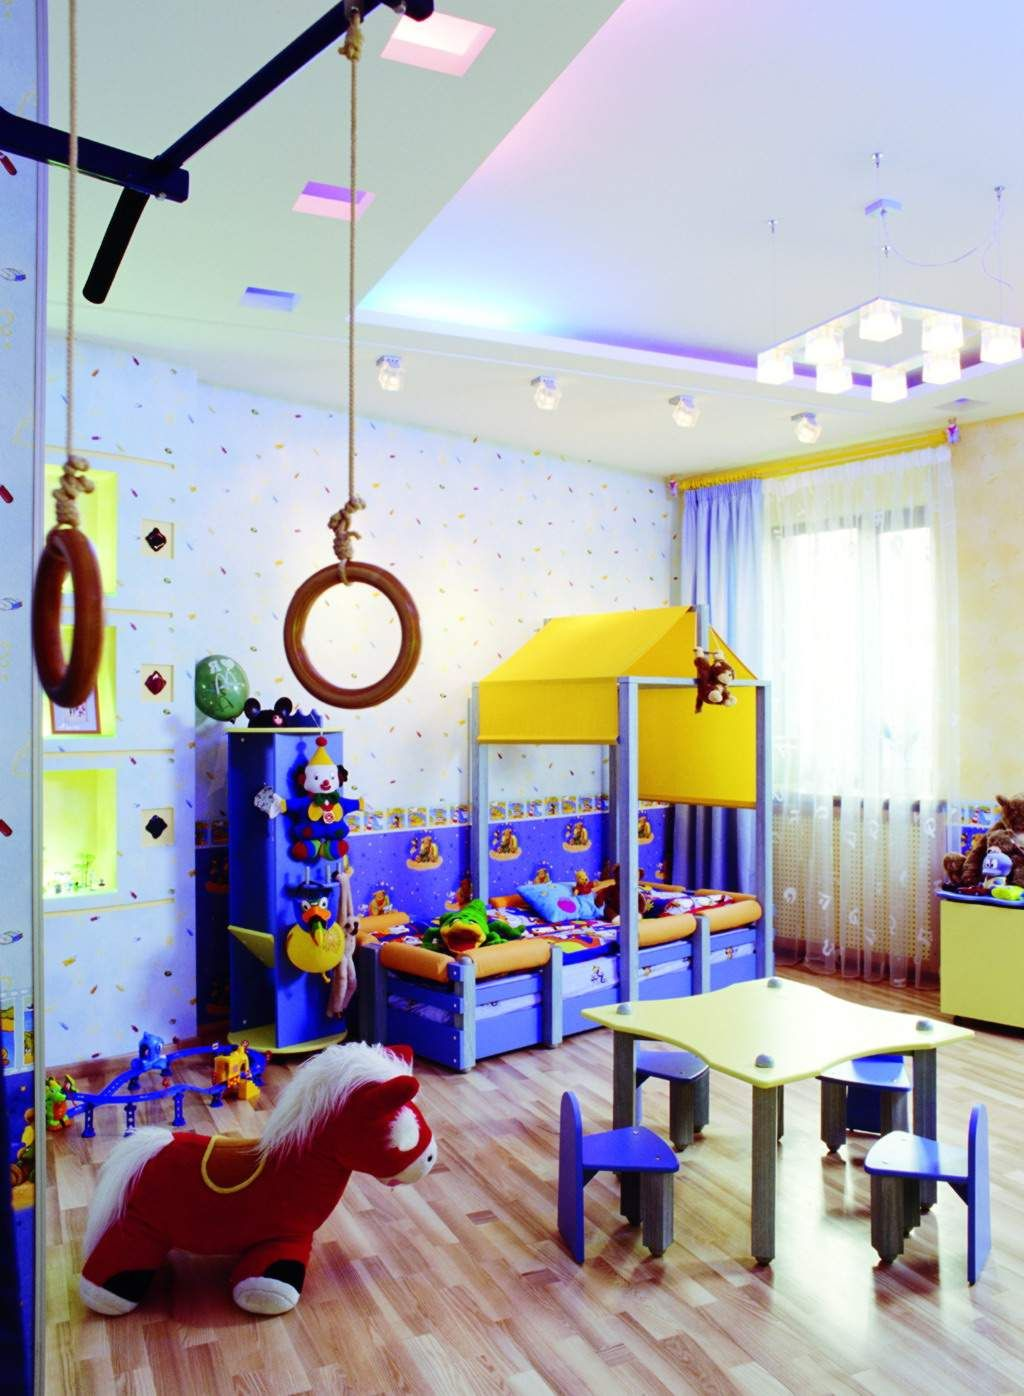 Kids bedroom kids room interior design with play and learn for Children s room mural